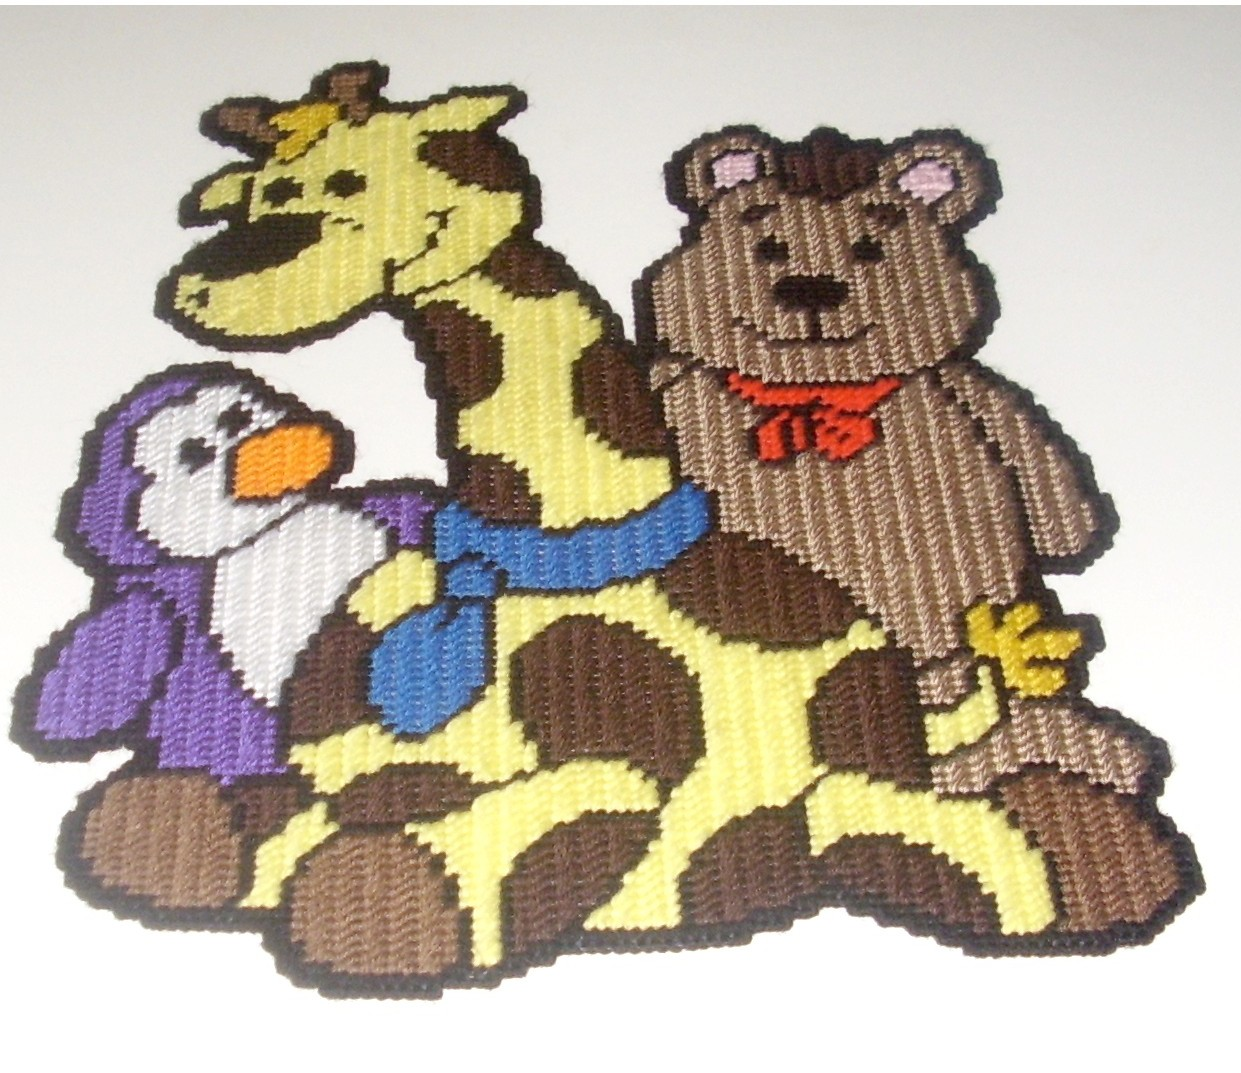 stuffedanimals17x13.jpg